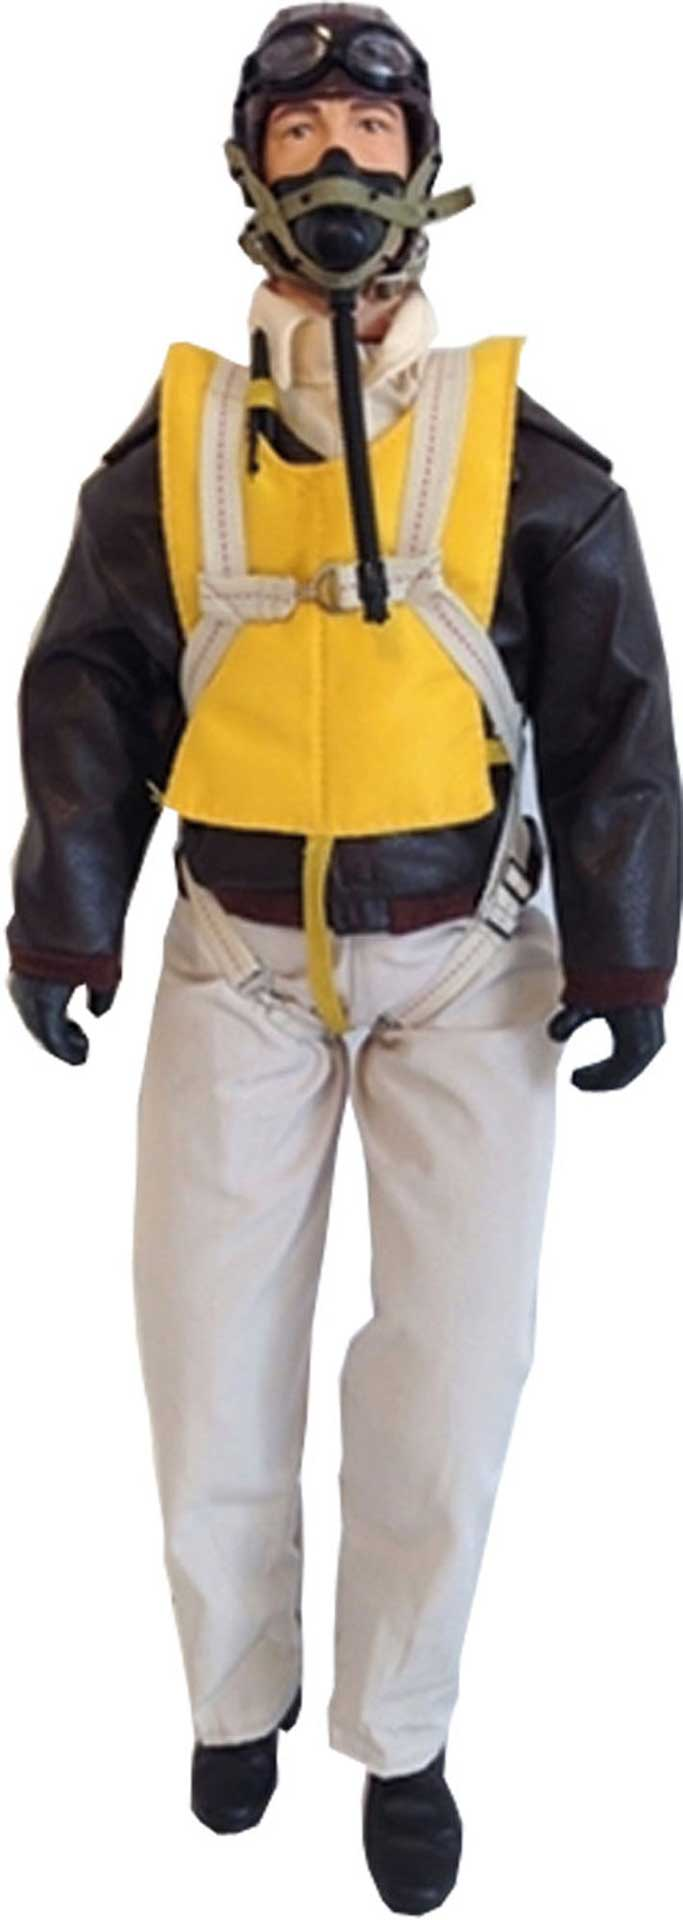 """WARBIRD PILOTS WWII USAAF 1:4,5-1:4 15"""" WITH HEAD ACTIVATION PILOT"""